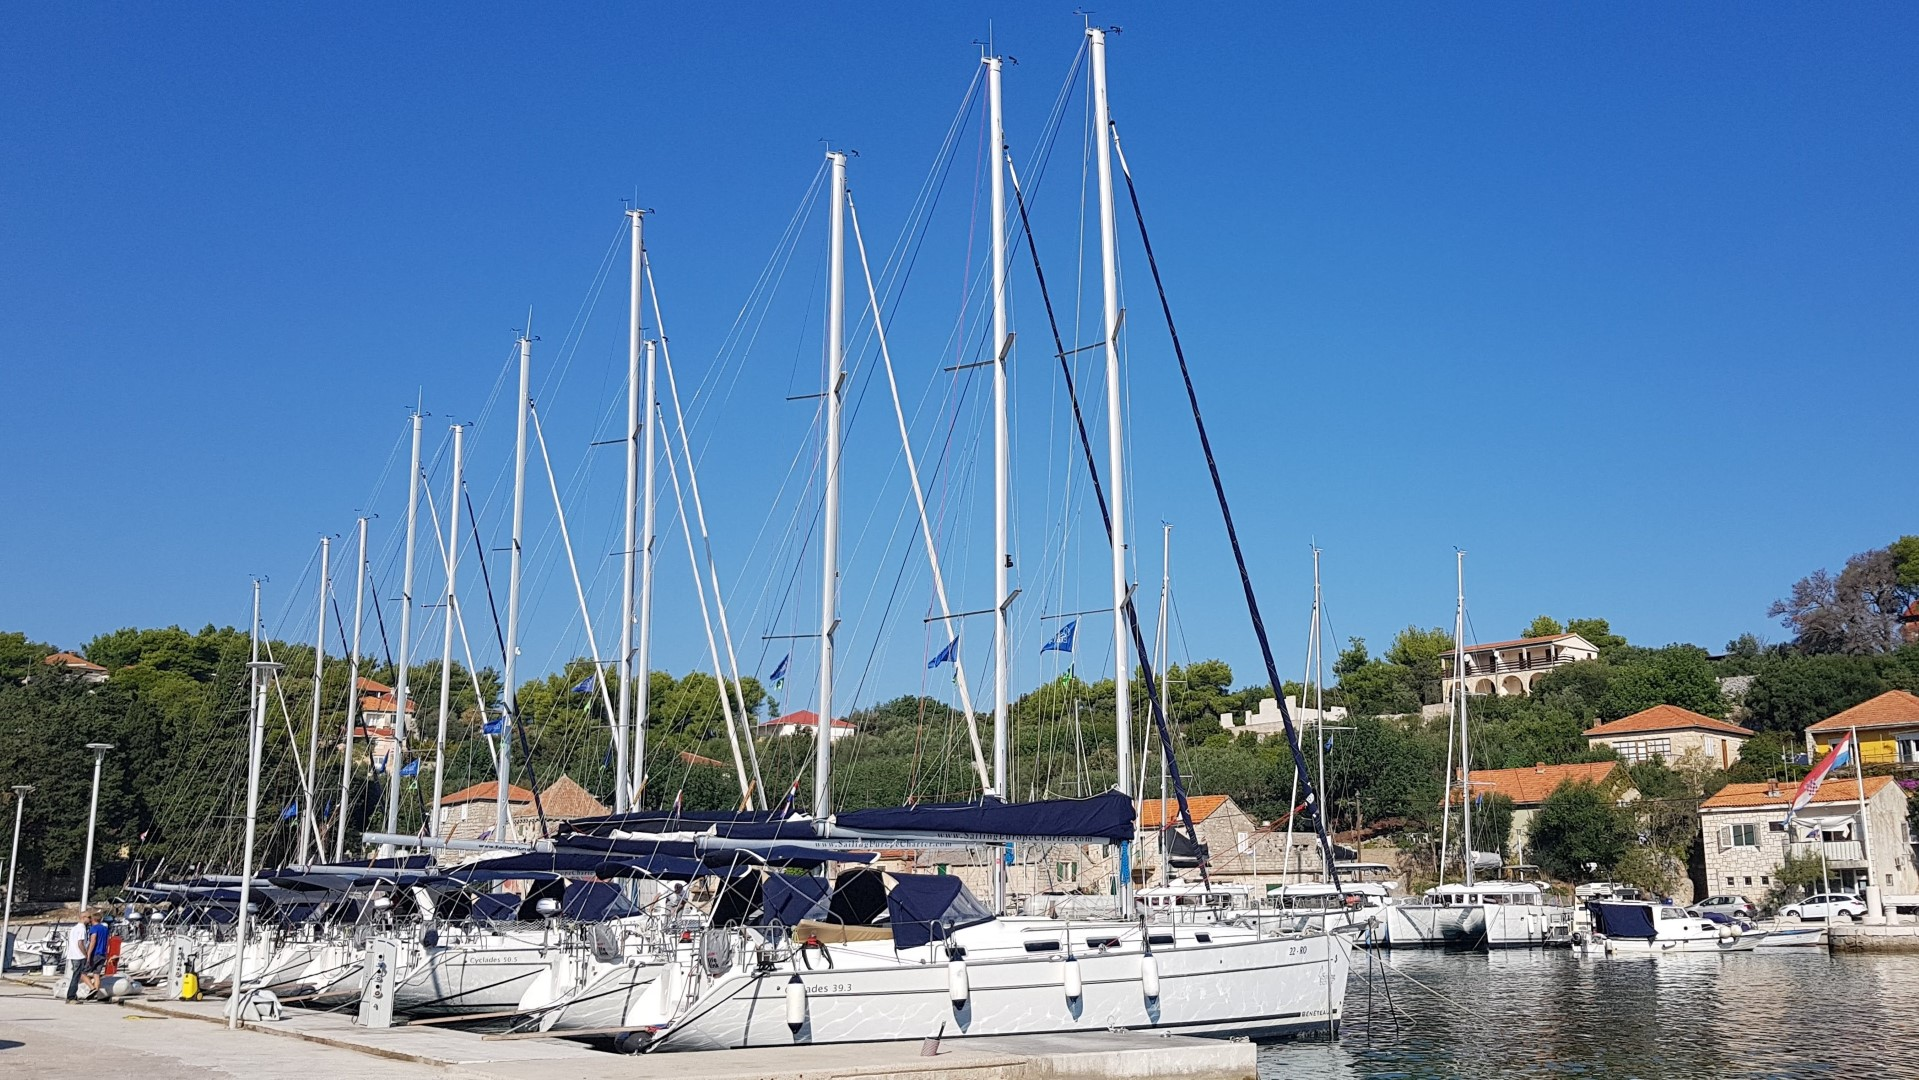 Sun Odyssey 449 (Port Royal) Marina Rogač - sailboats (photo taken 2019) - 1